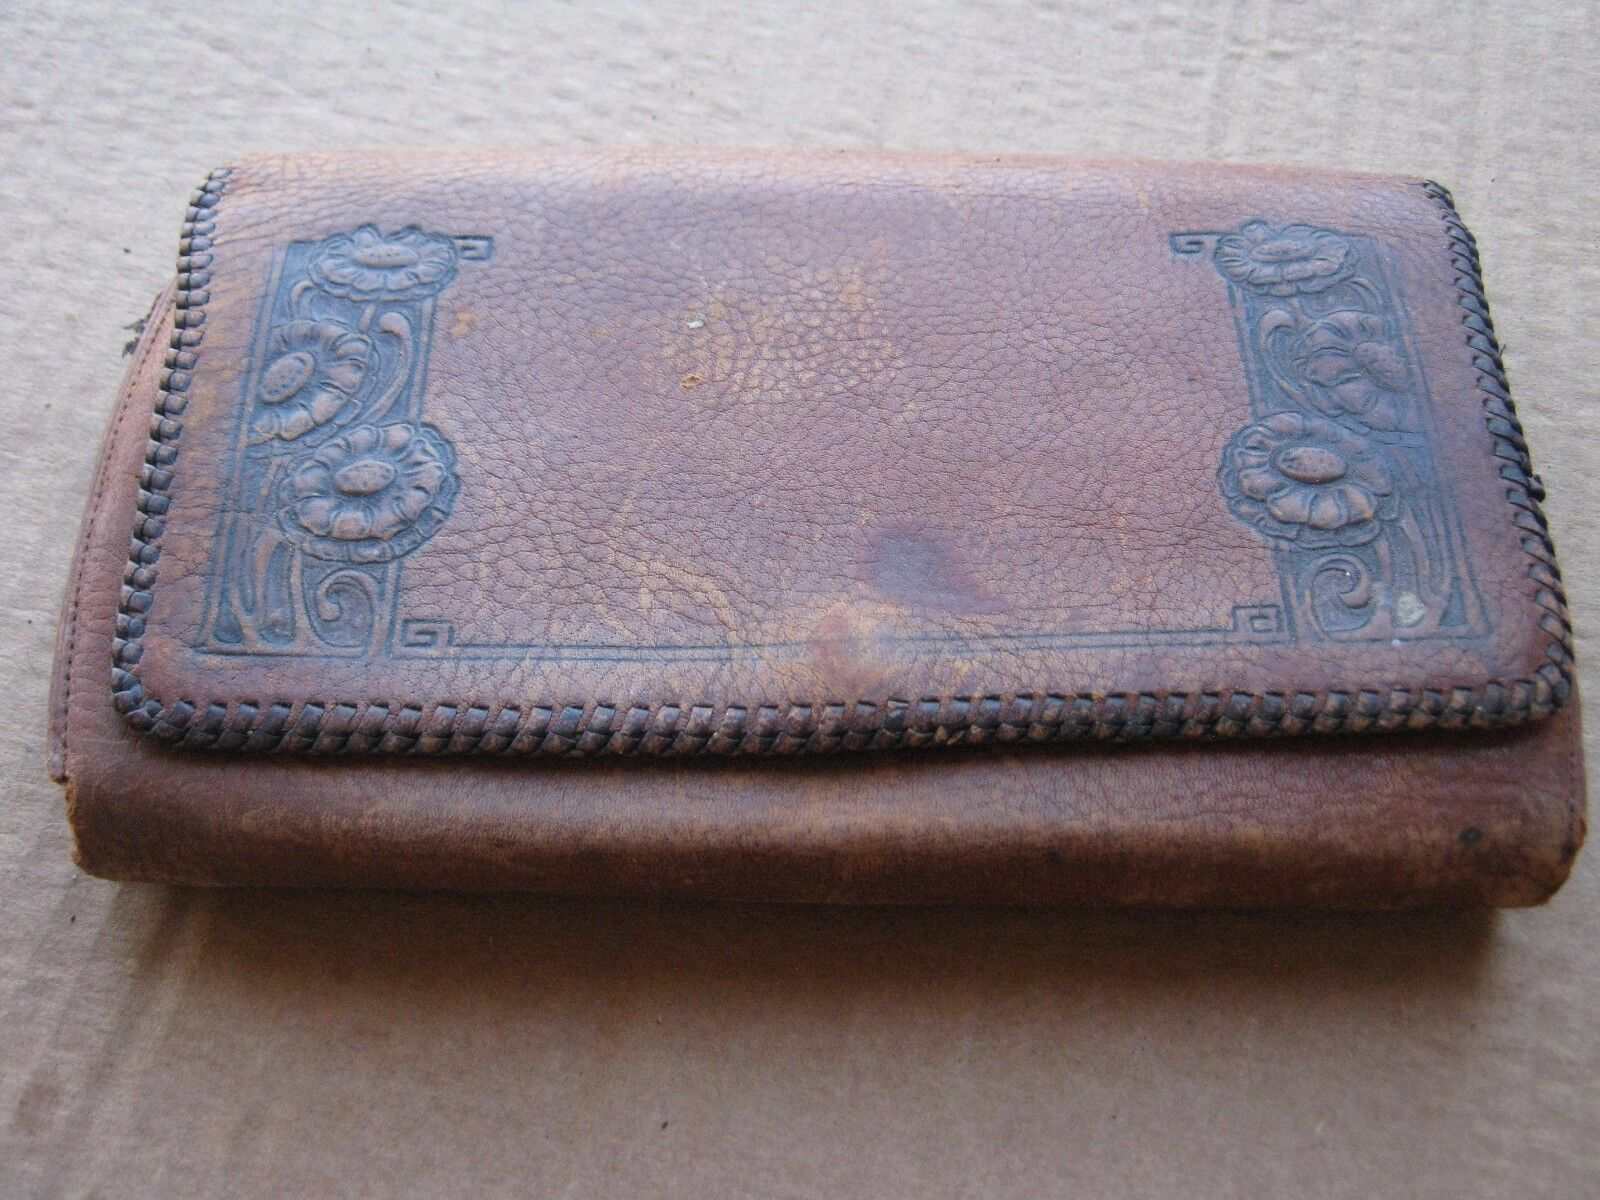 Vintage Leather Fly Wallet Fishing Nautical Decor